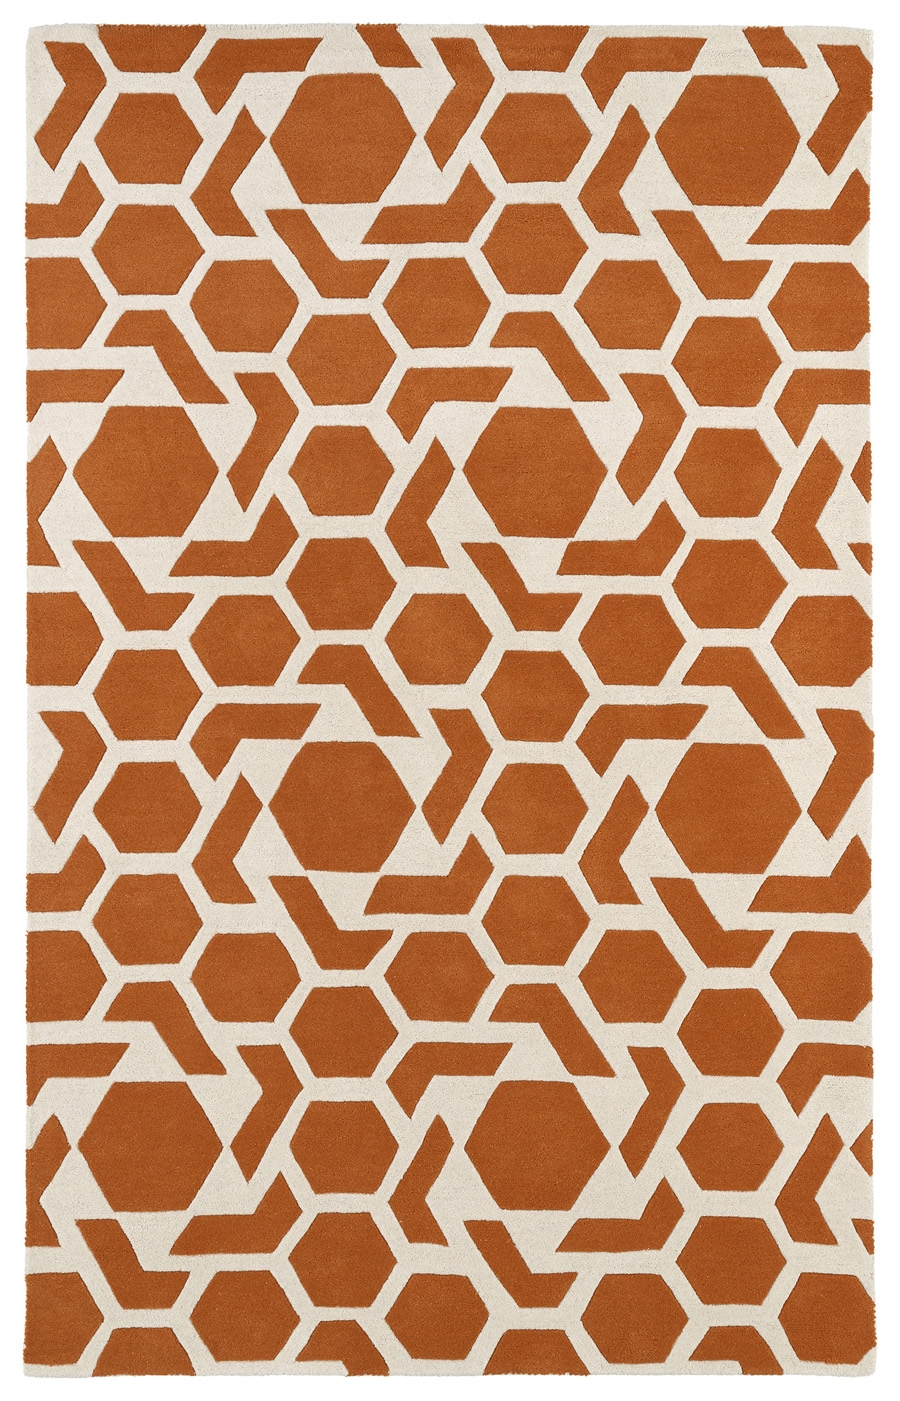 Kaleen Revolution REV05 89 Orange Rug